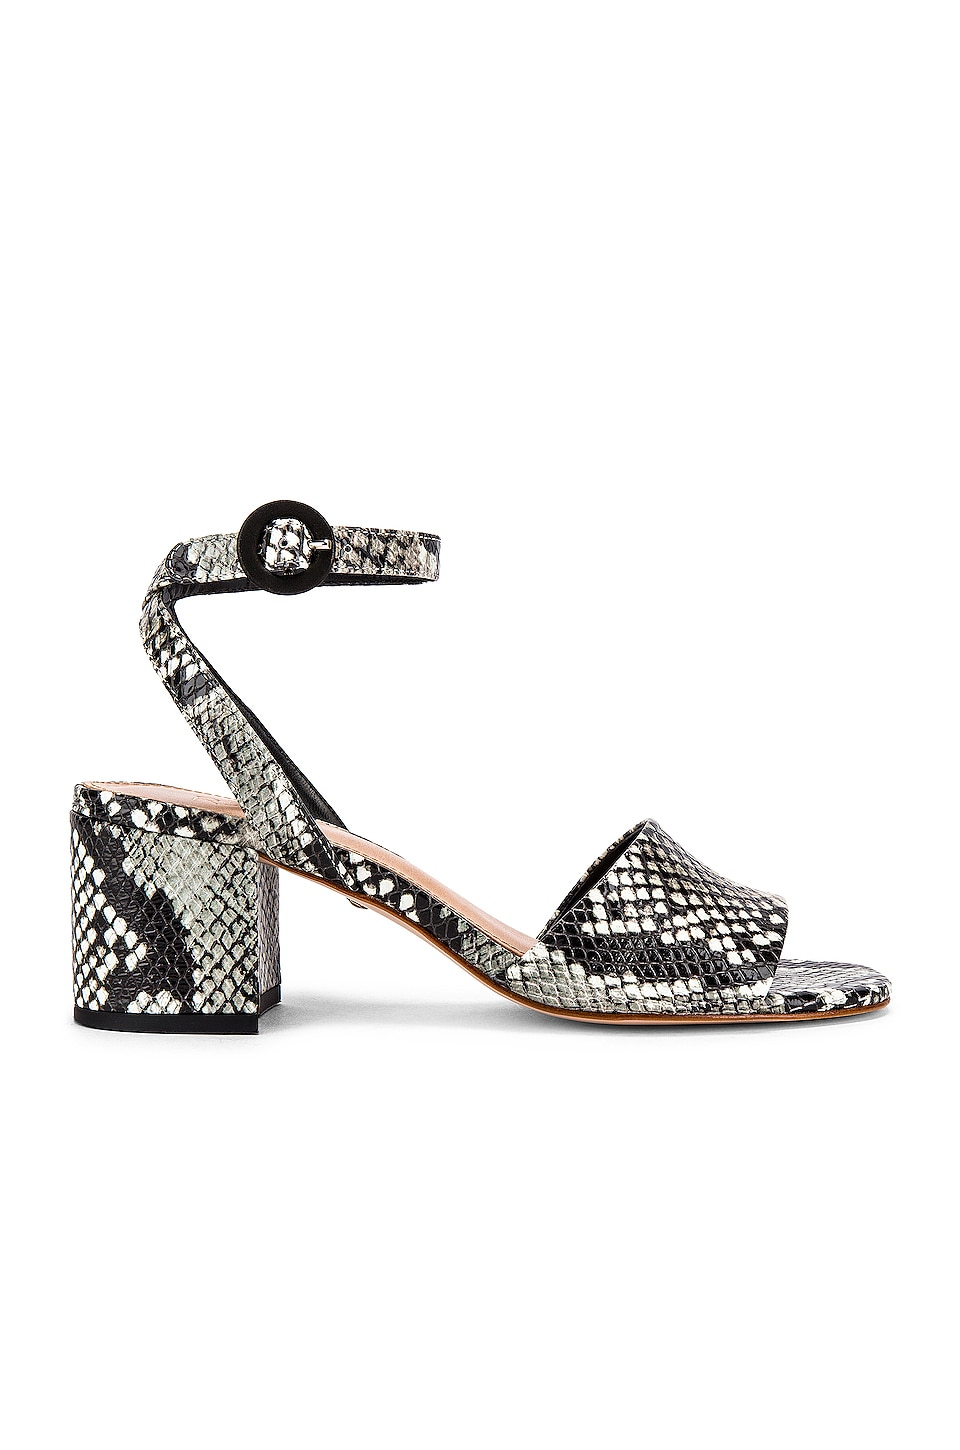 RAYE Nava Sandal in Black & White